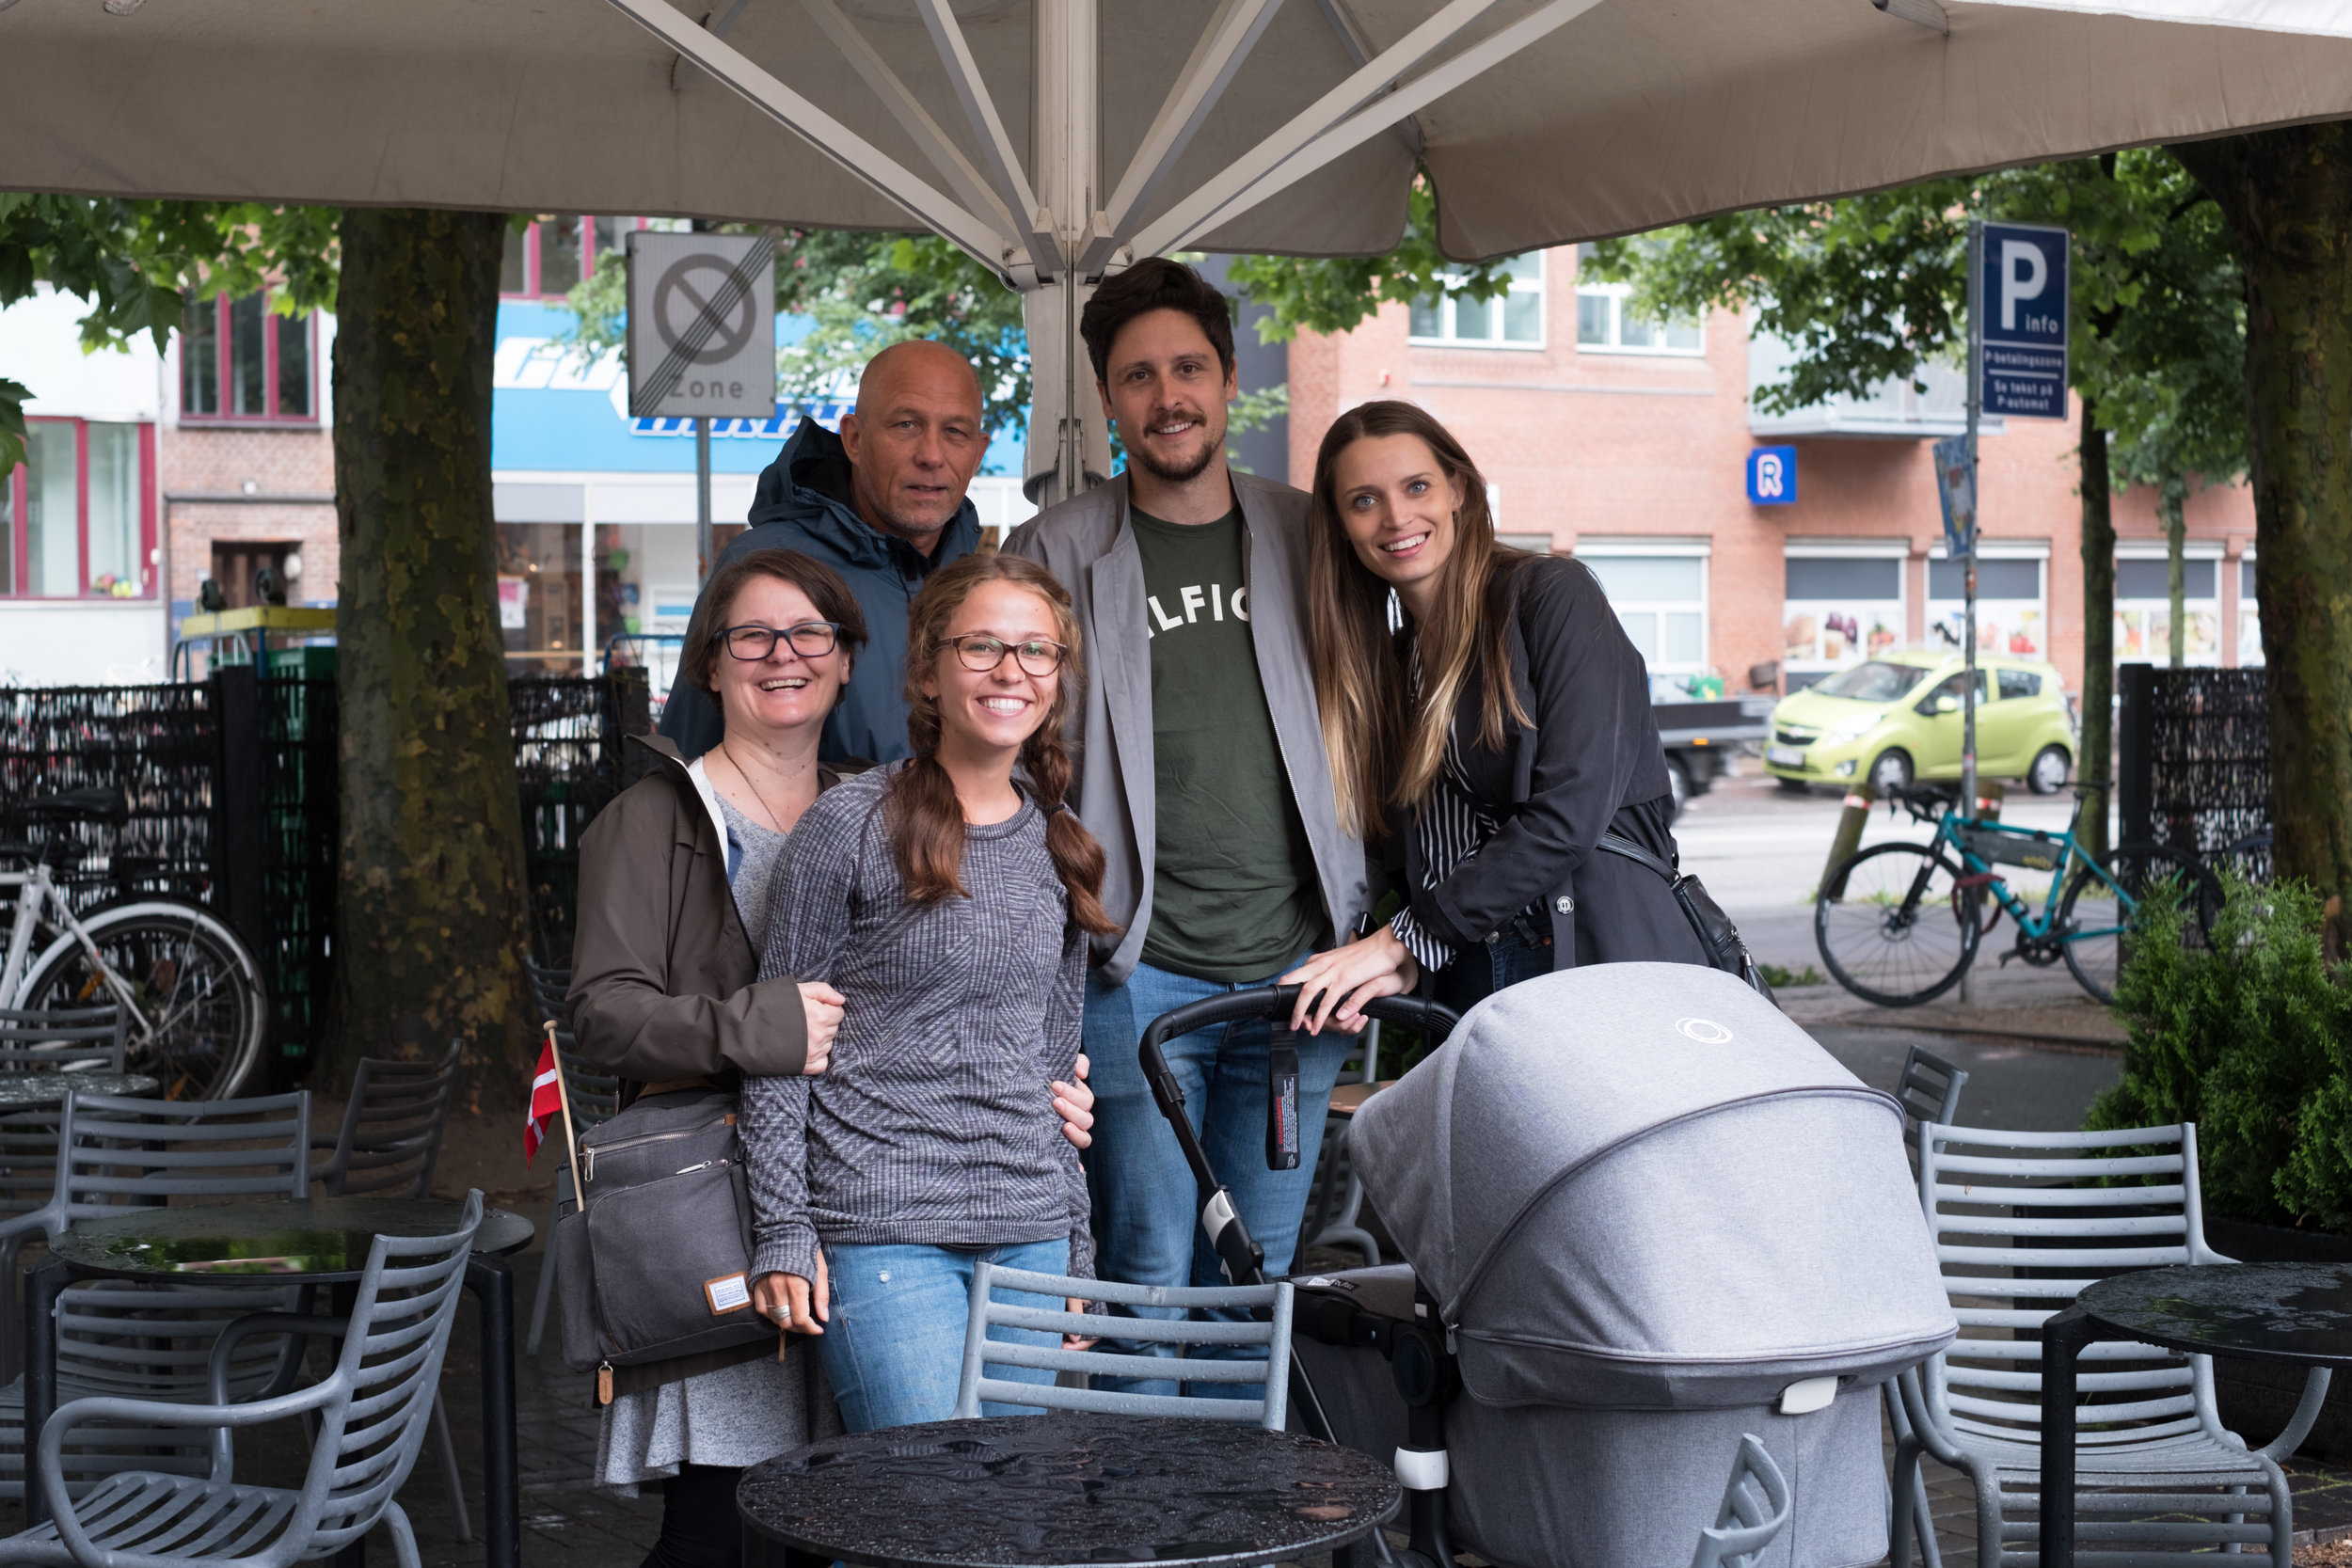 Meet up with Nikolai and Malene and introduction to new baby girl. We also had a first introduction to Jonas and Maja's new baby girl, Victoria.